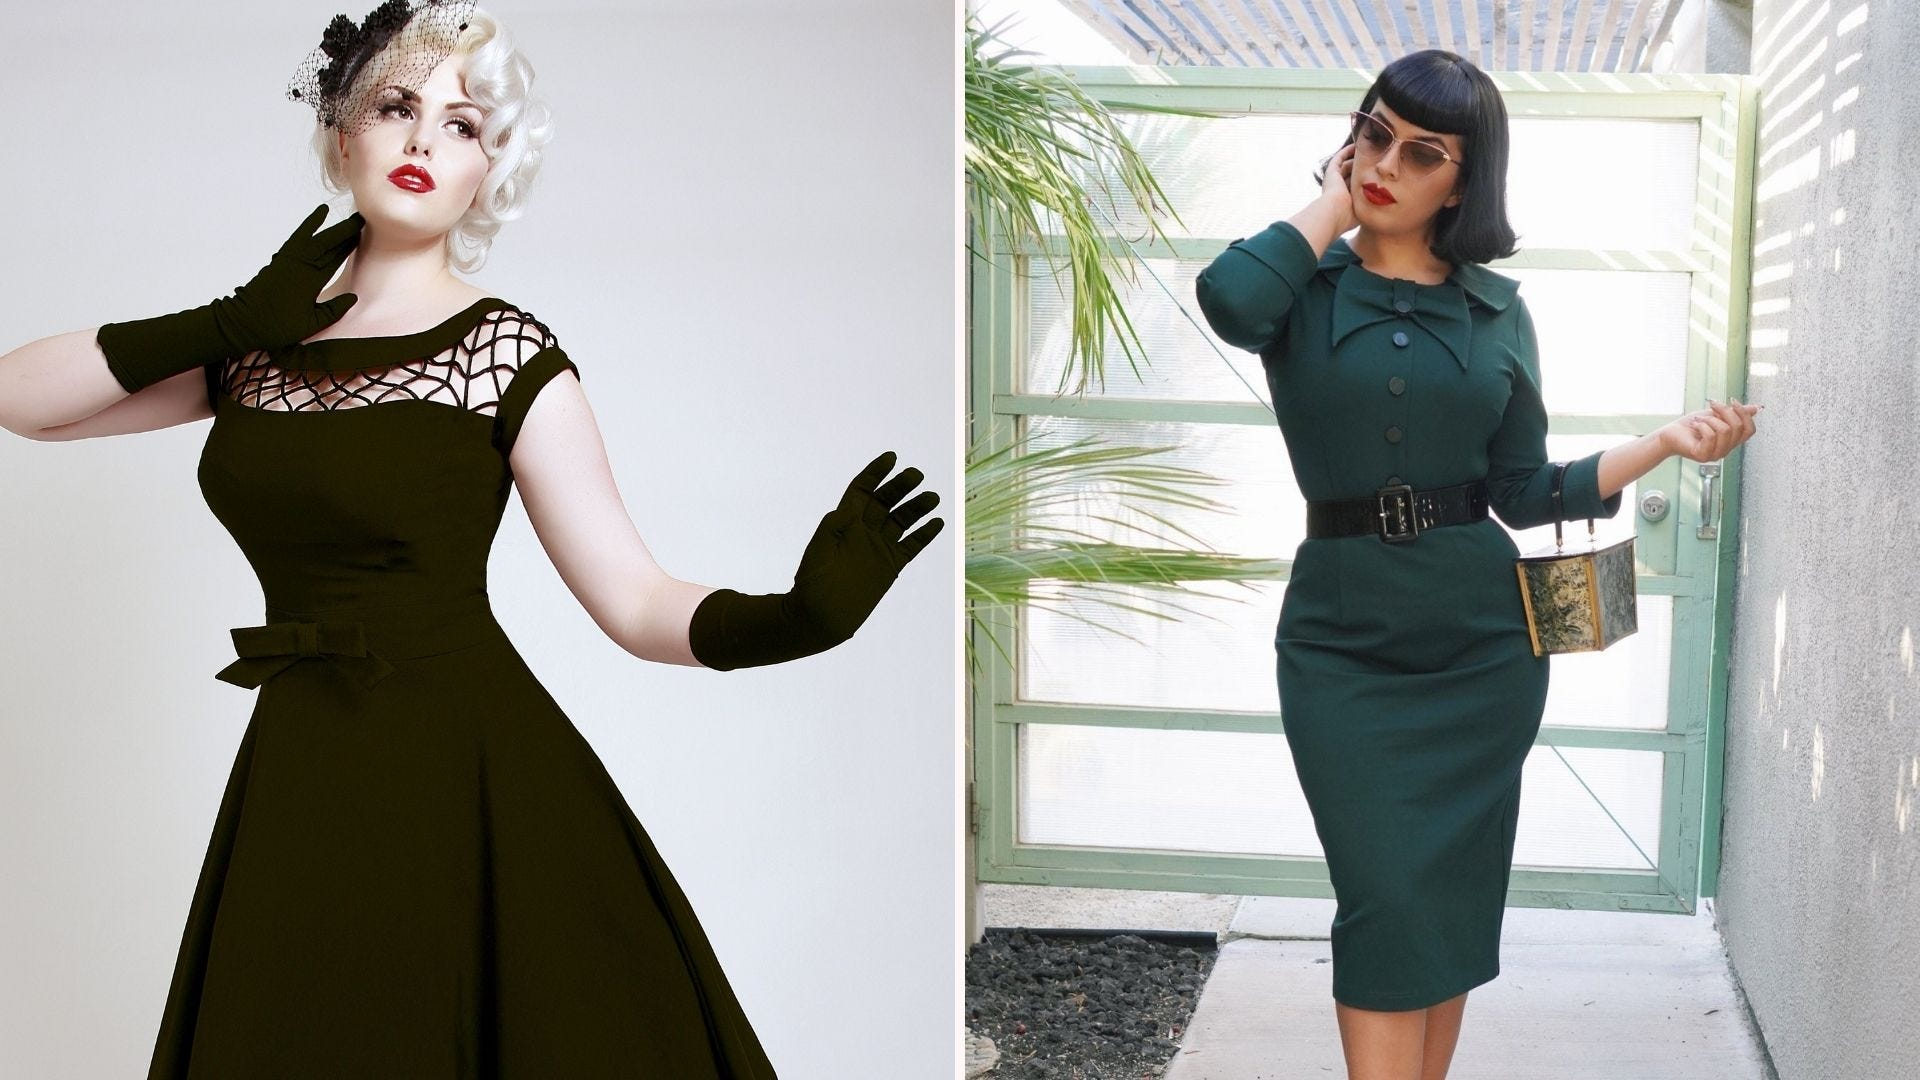 A woman in a black swing dress; a woman in a green pencil skirt dress